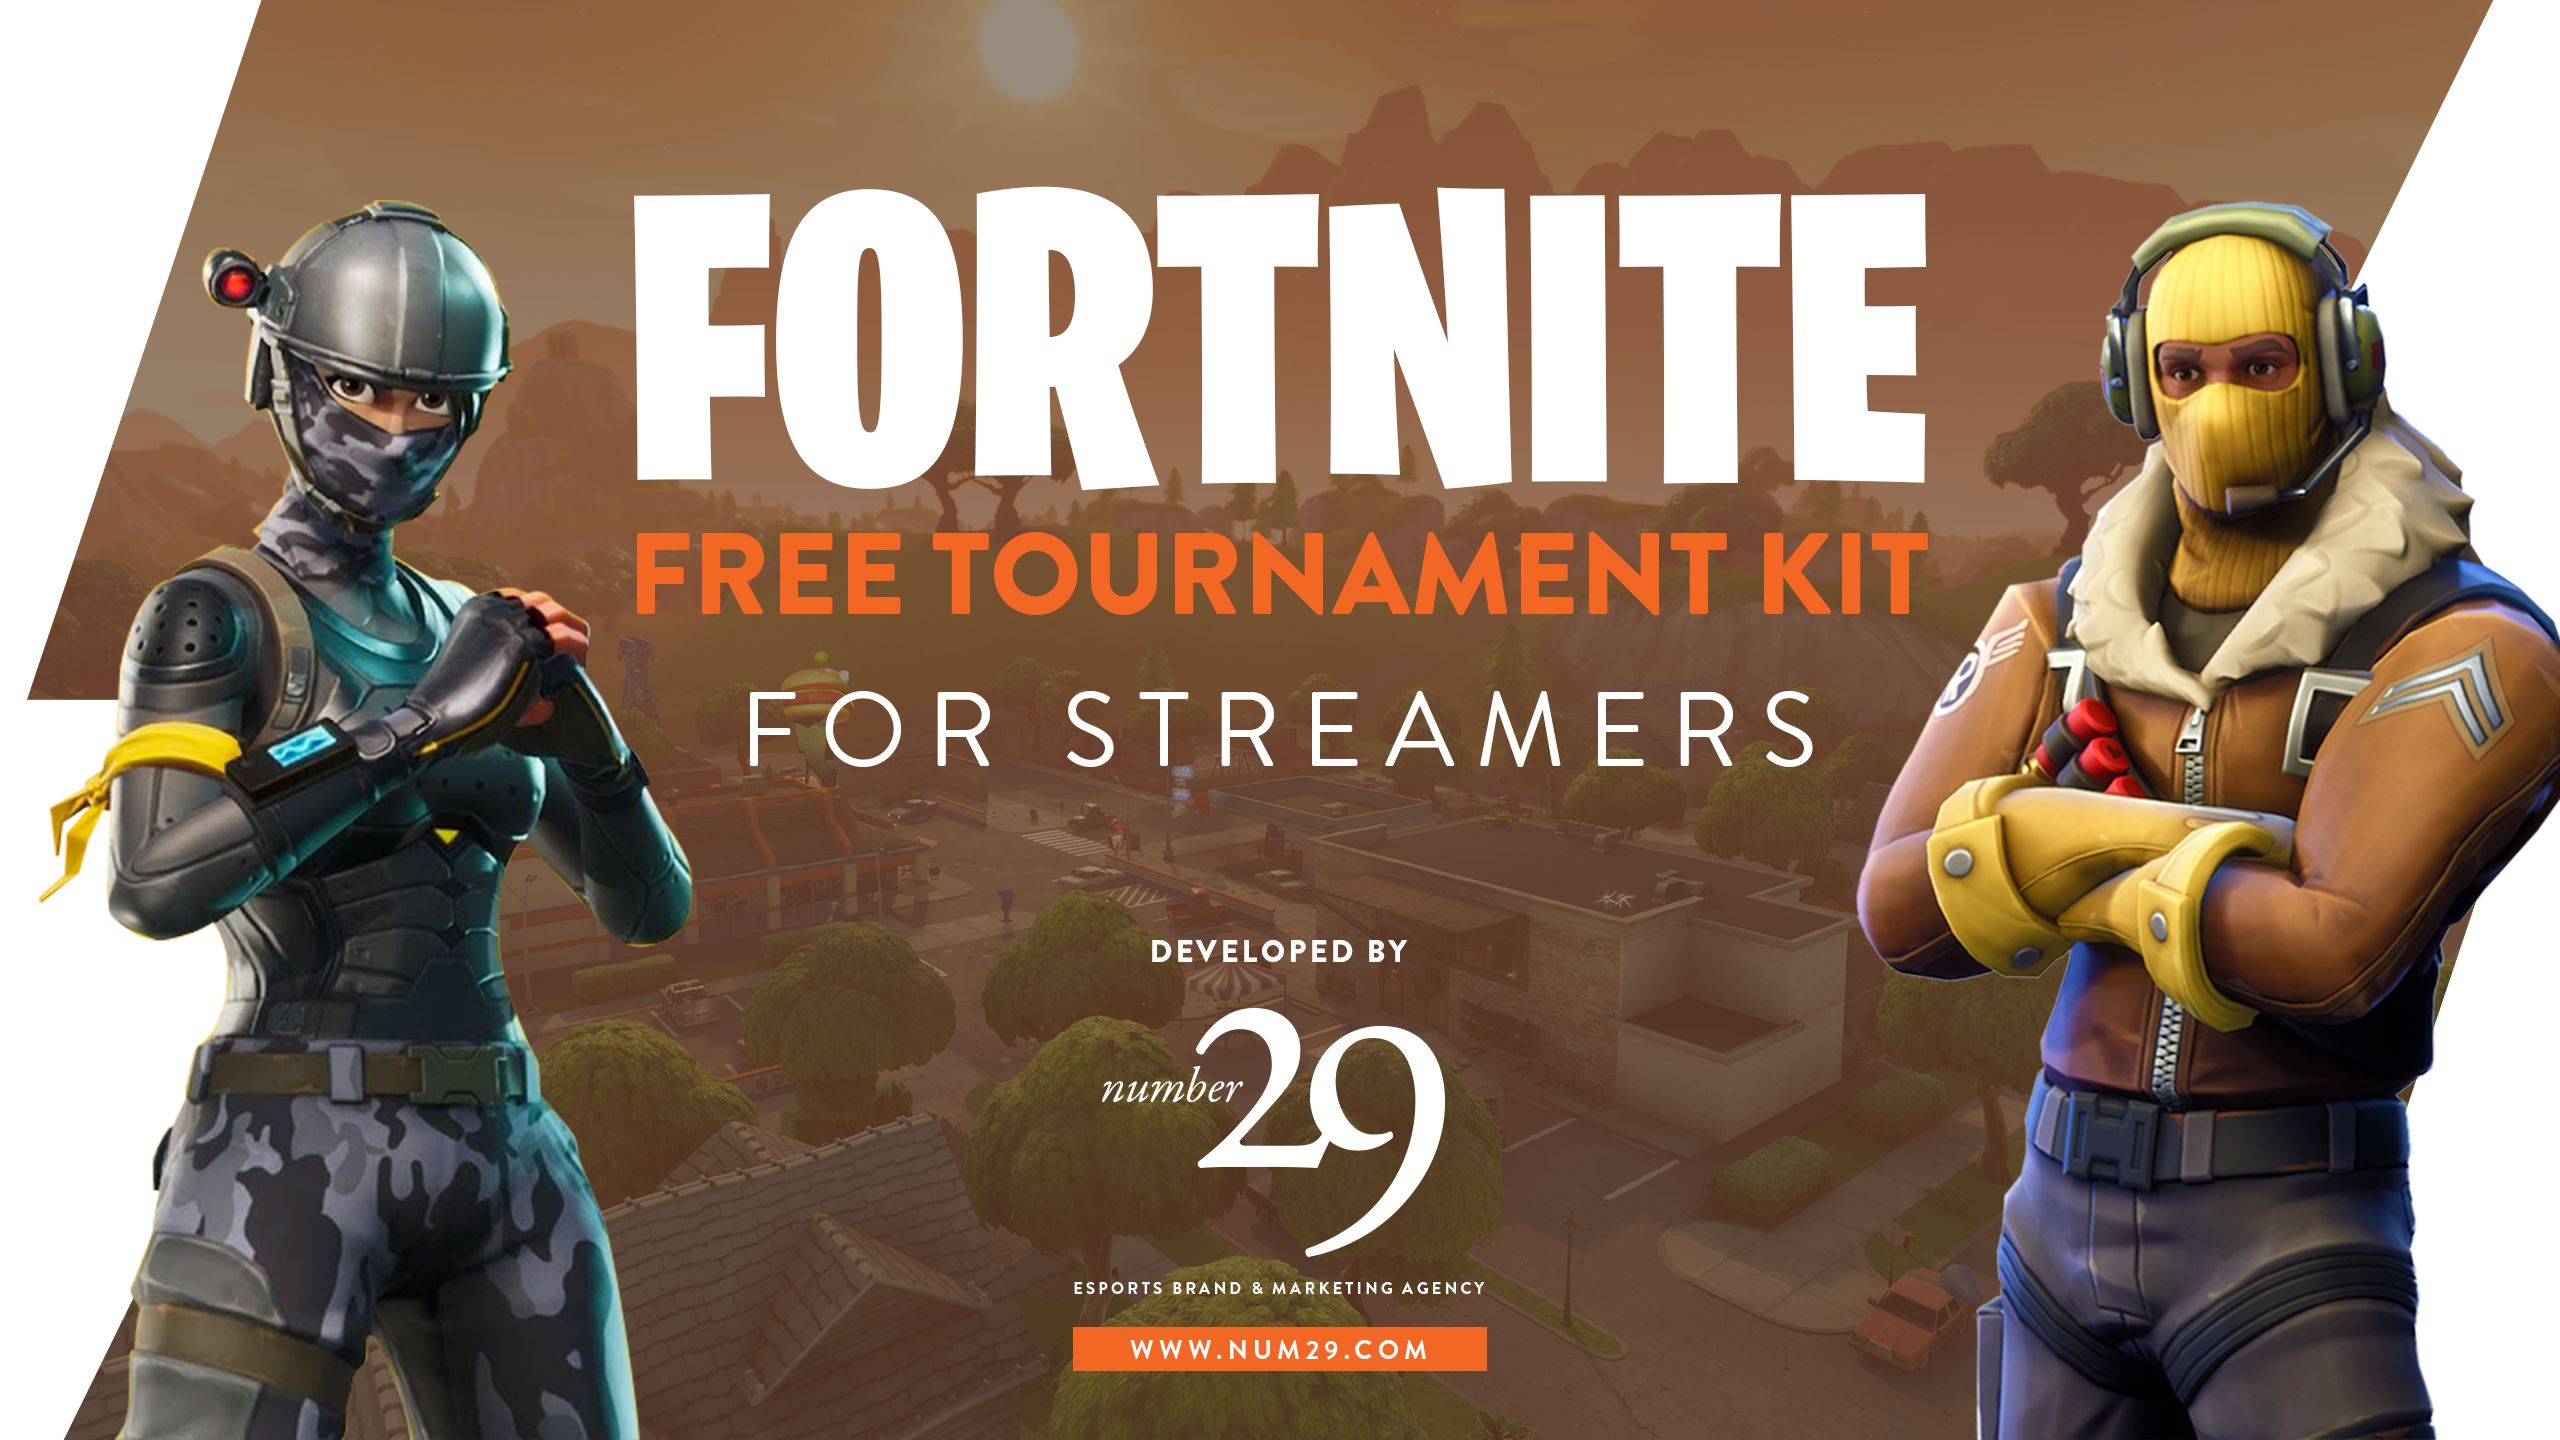 Fortnite Tournament Kit for Streamers